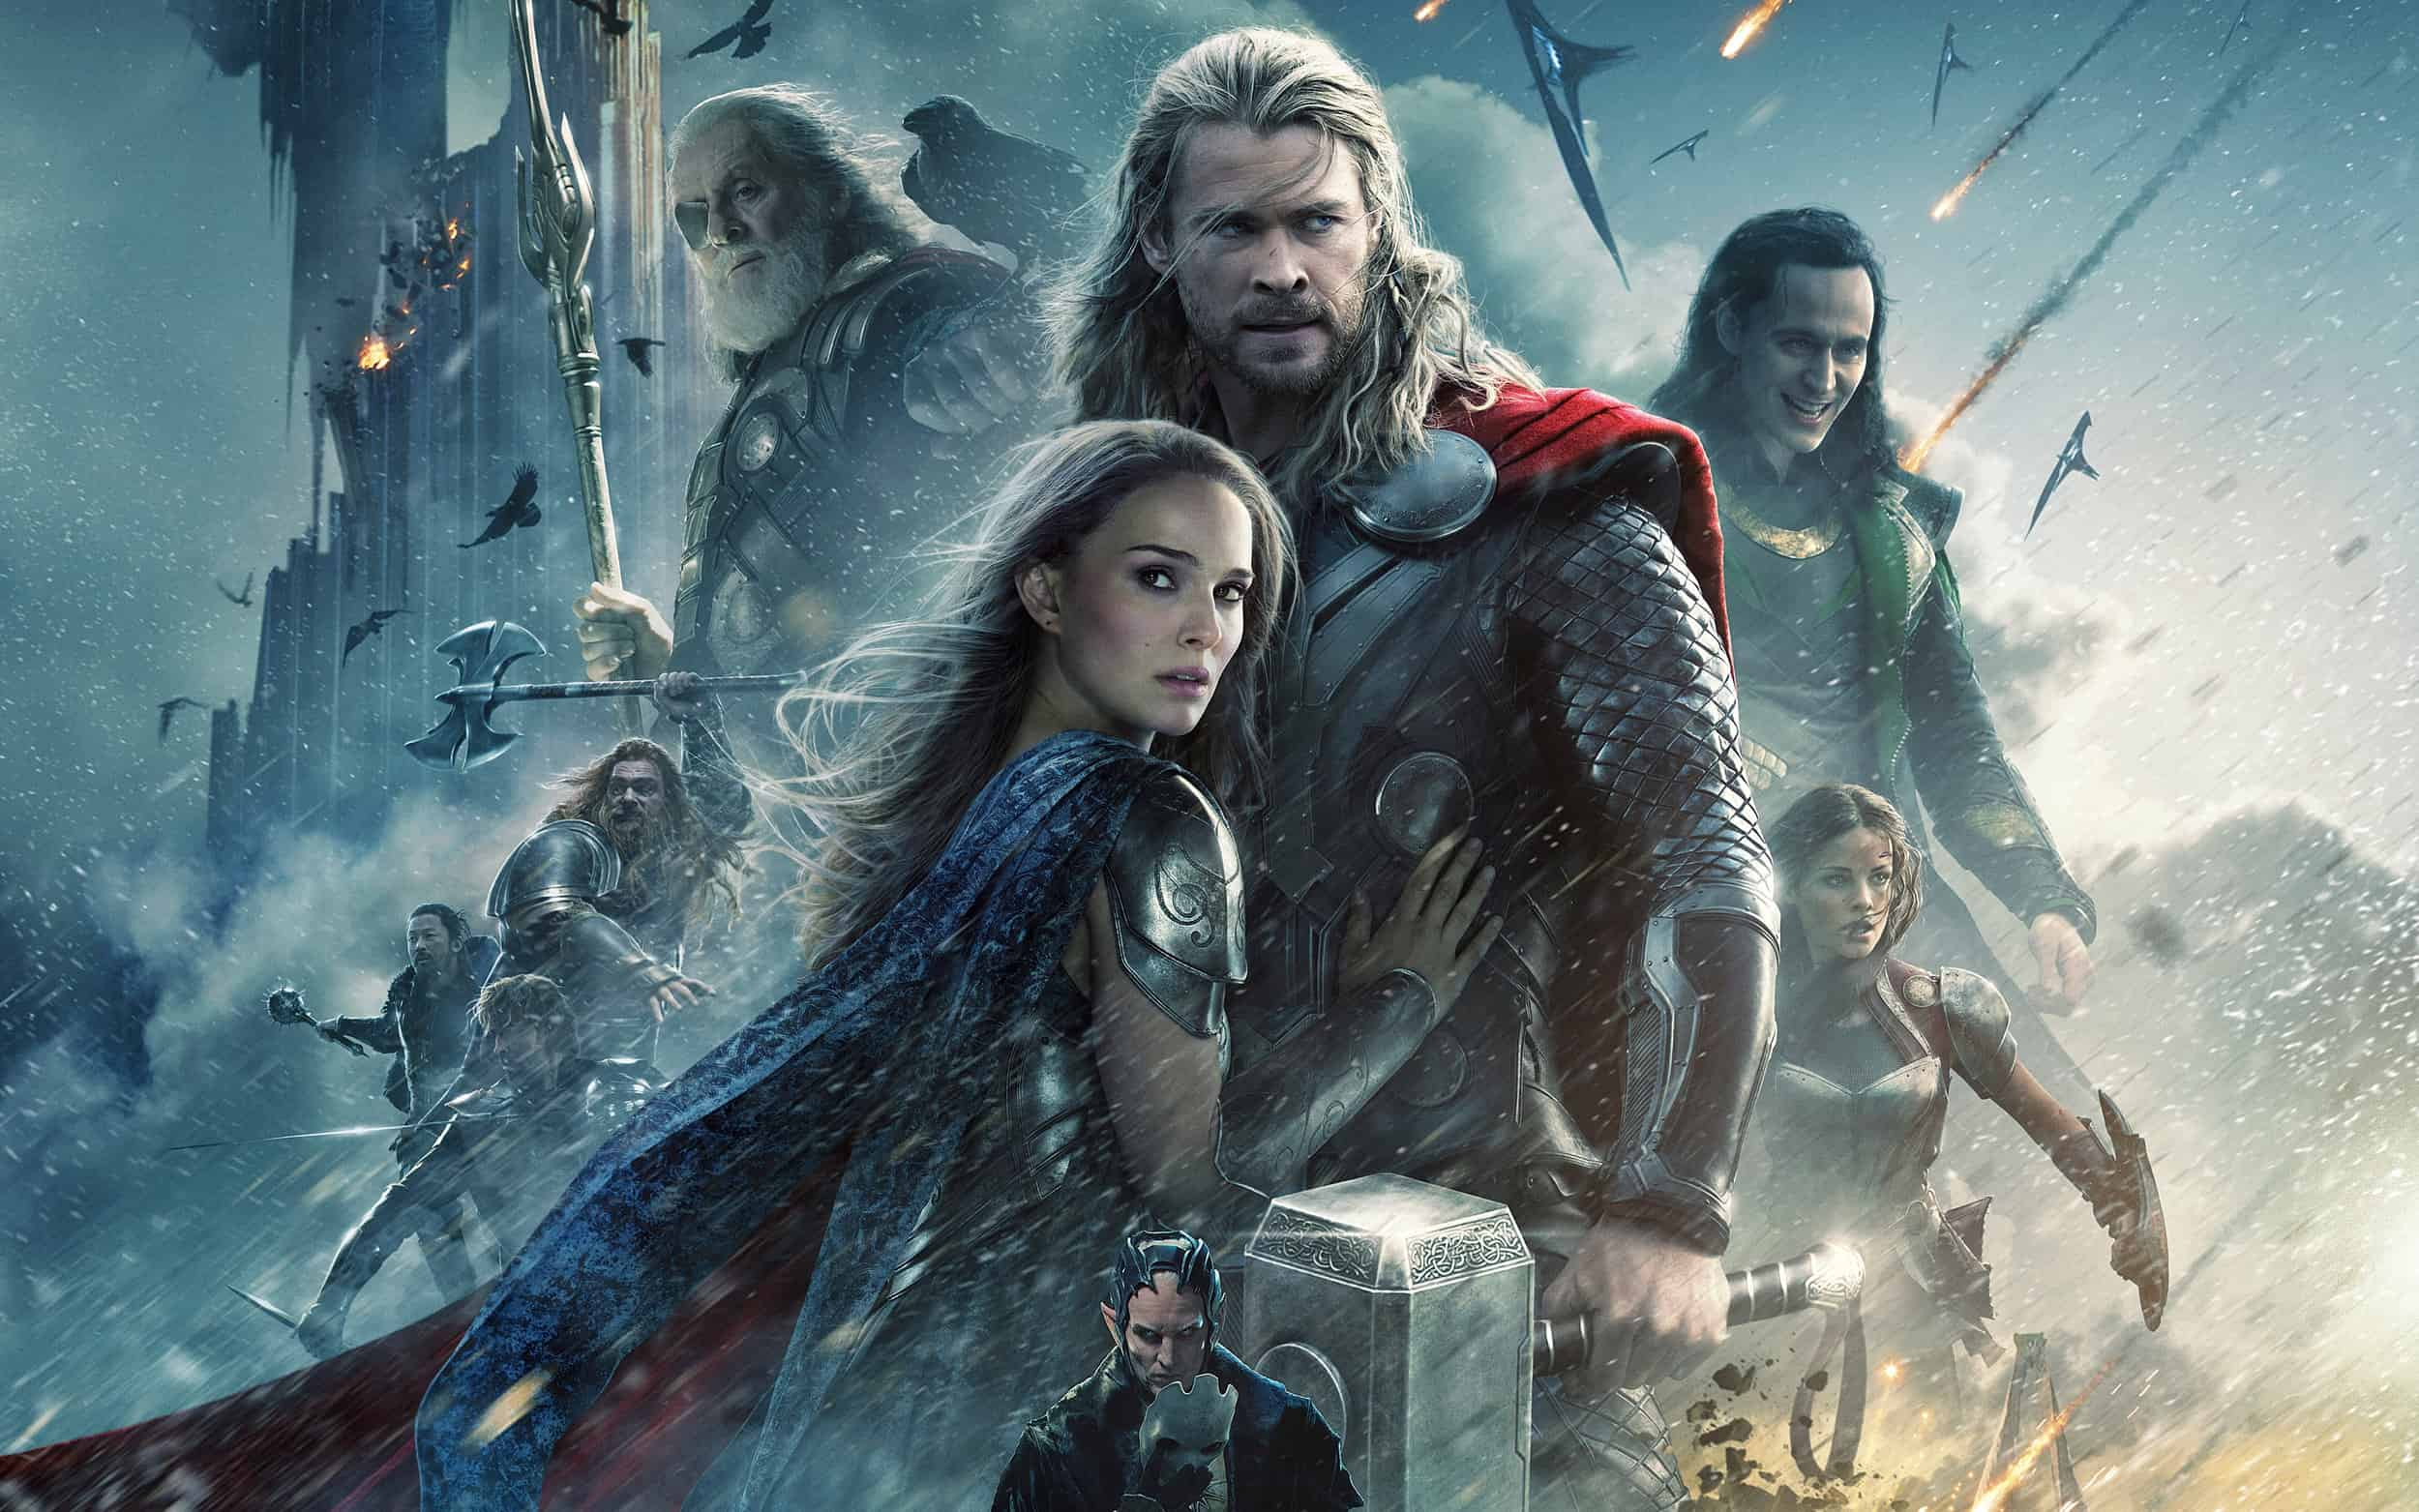 10 Worst Marvel Movies according to Rotten Tomatoes - Vamers